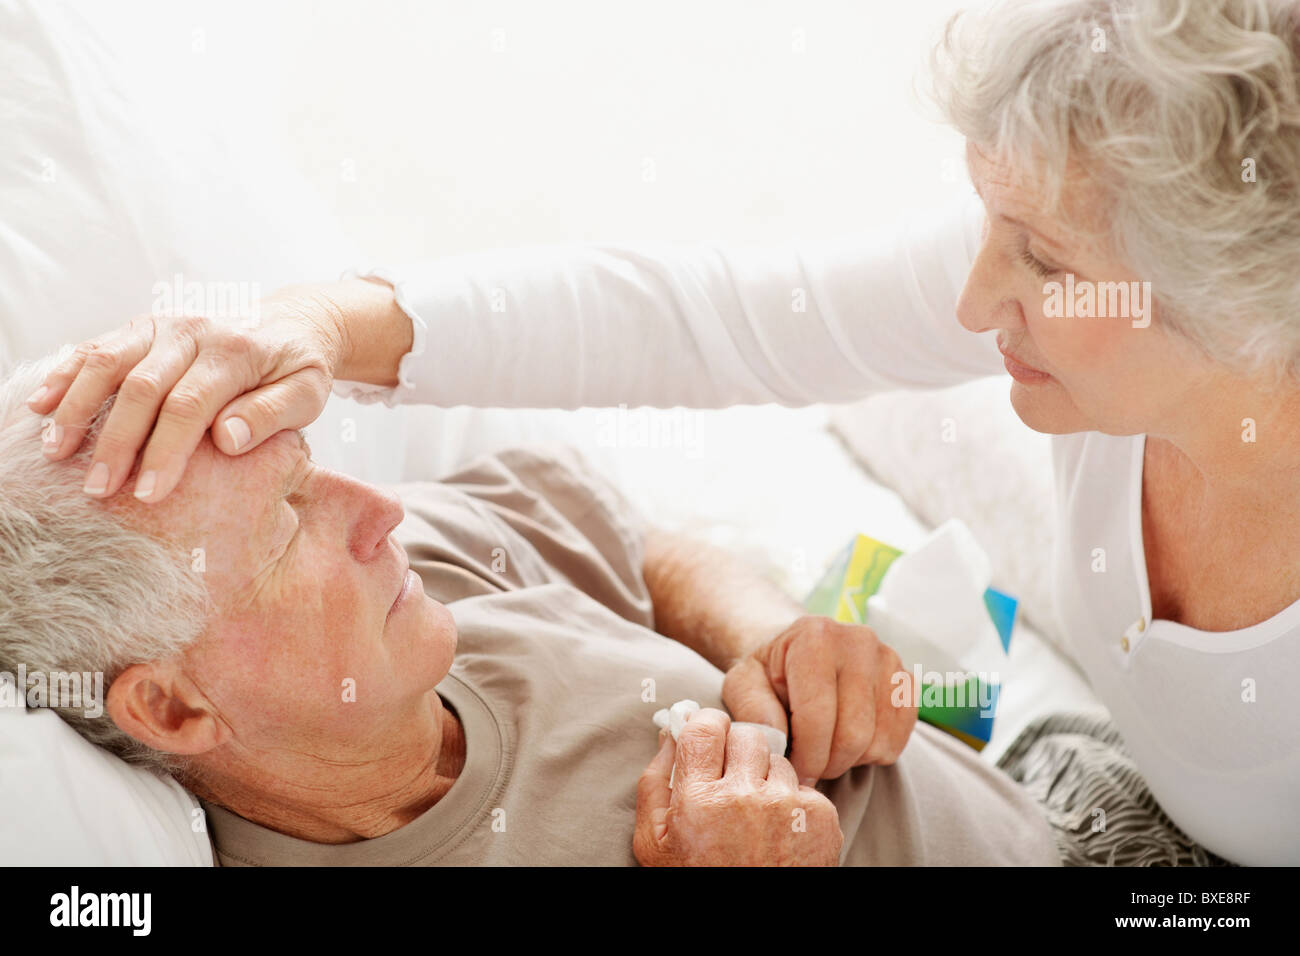 Senior woman caring for man with a fever Stock Photo